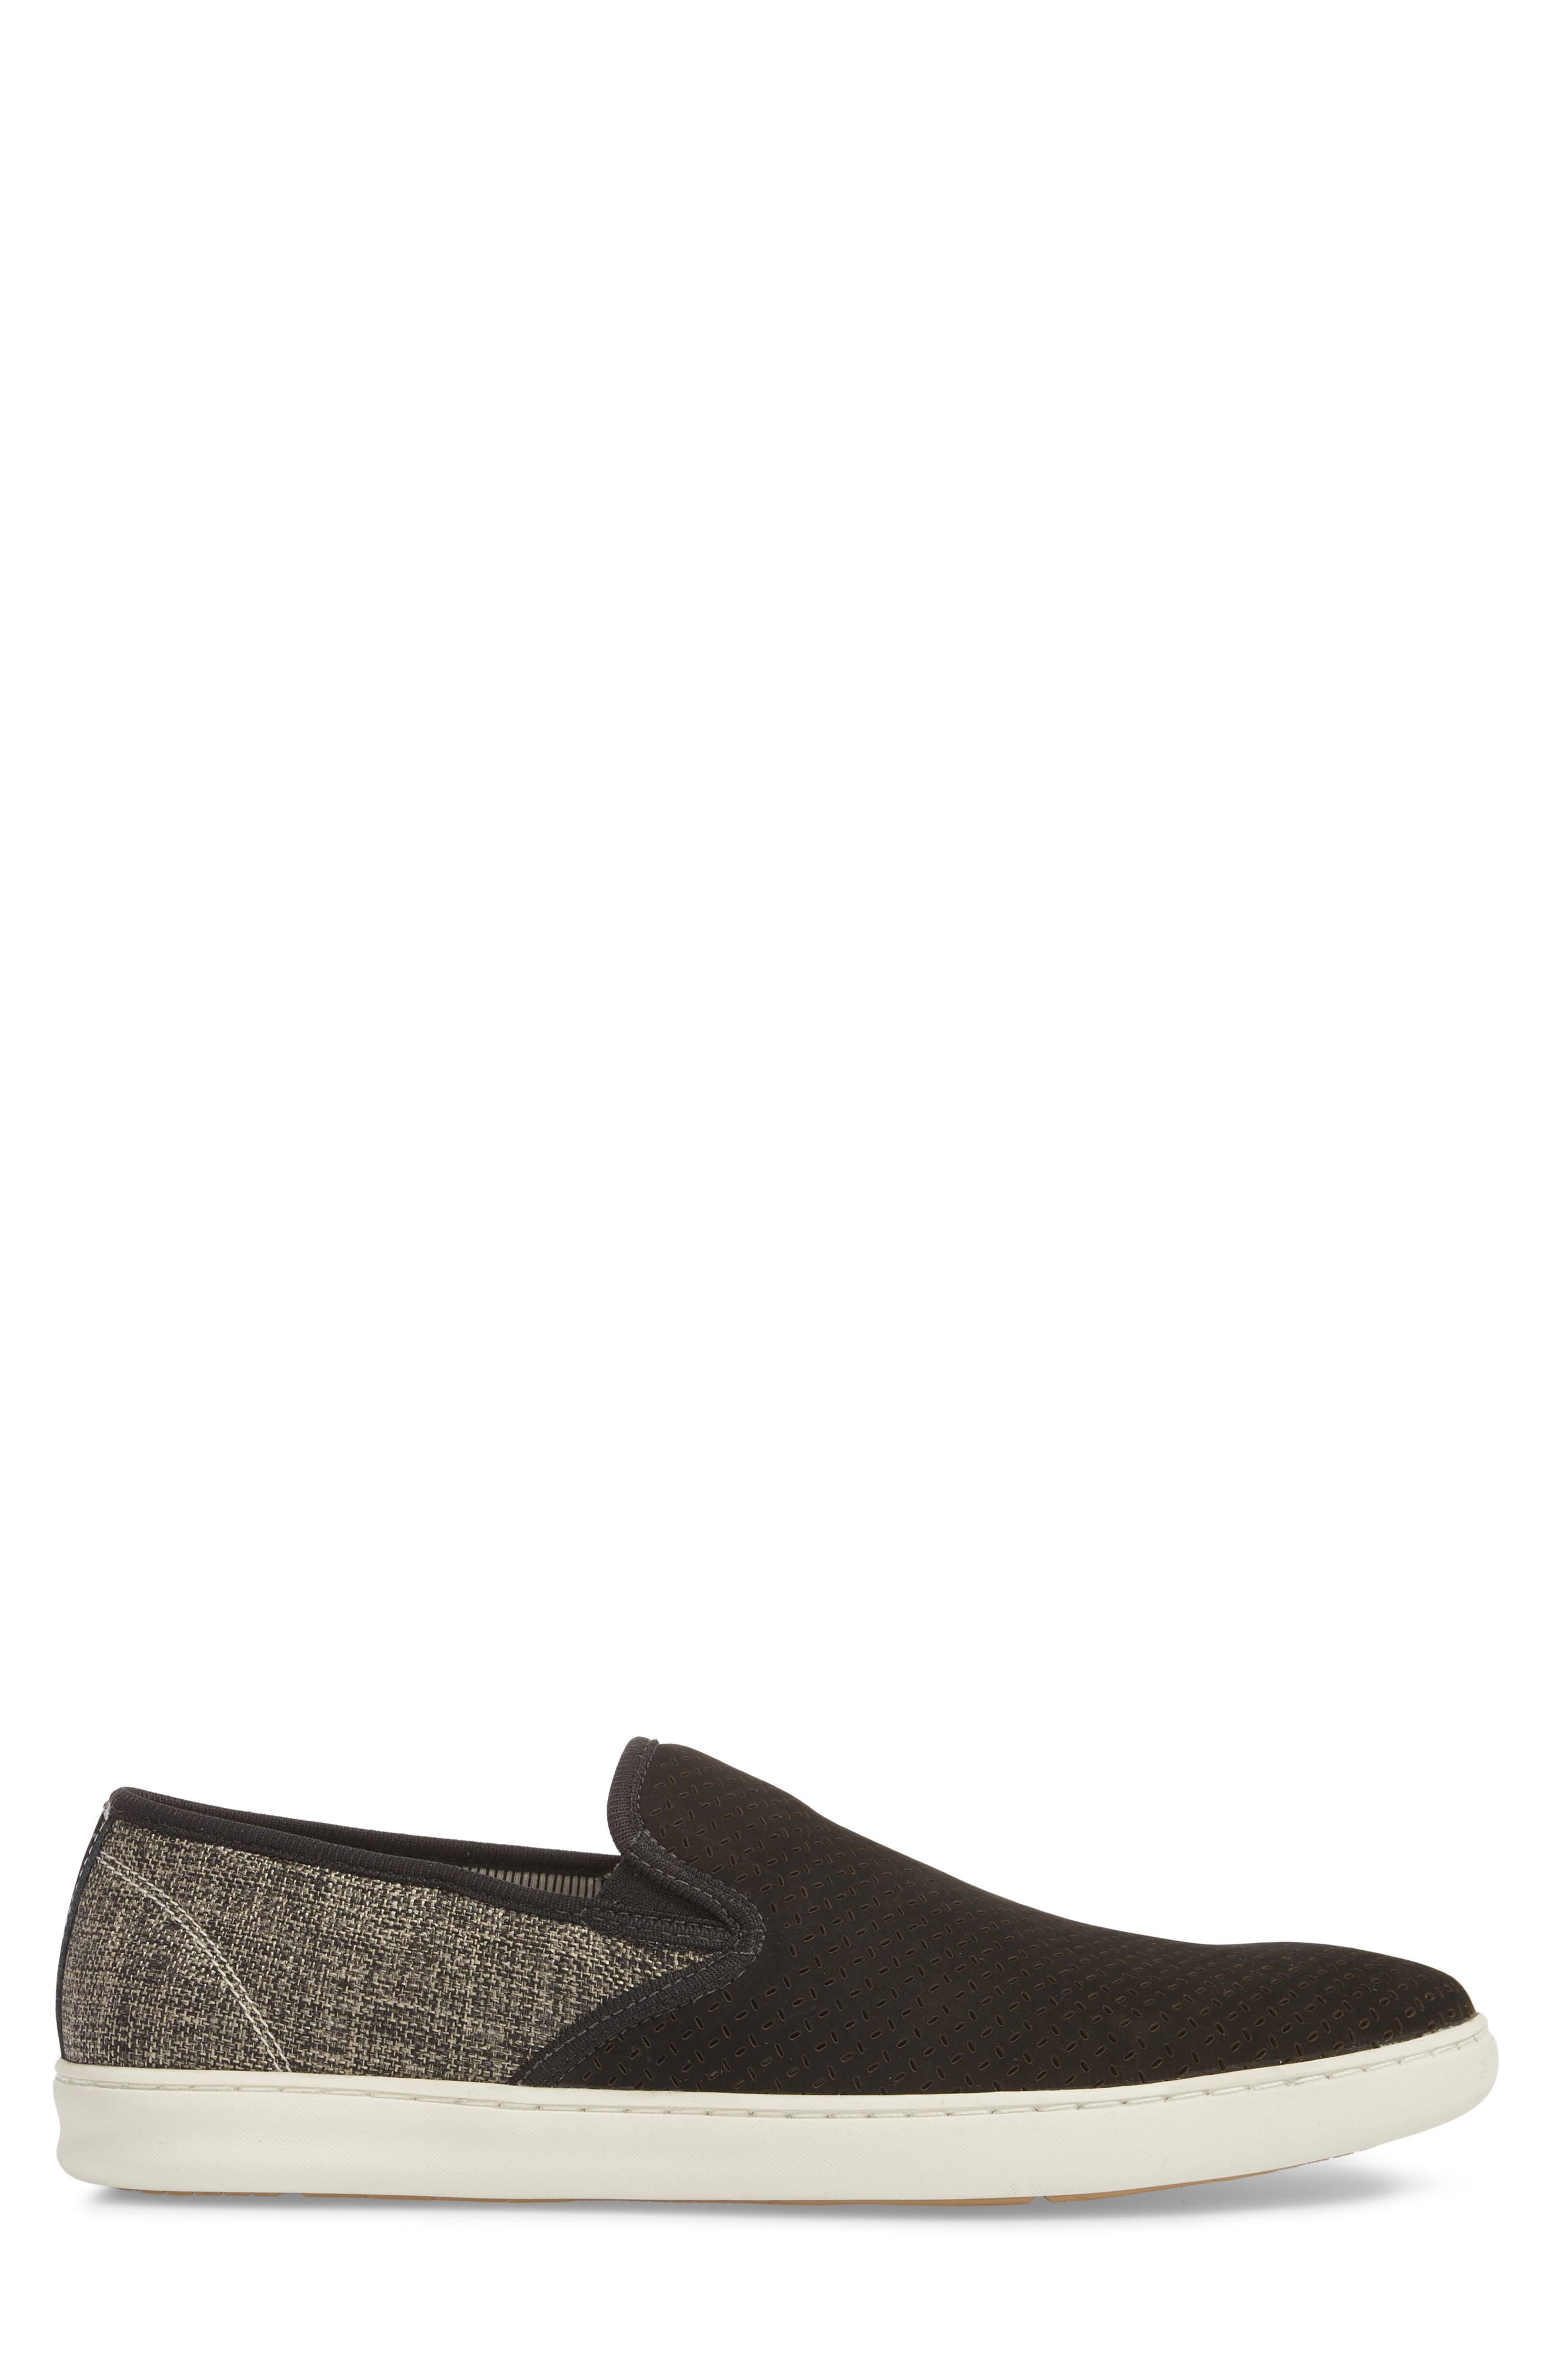 Malibu Perforated Loafer,                             Alternate thumbnail 3, color,                             BLACK LEATHER / GREY CANVAS